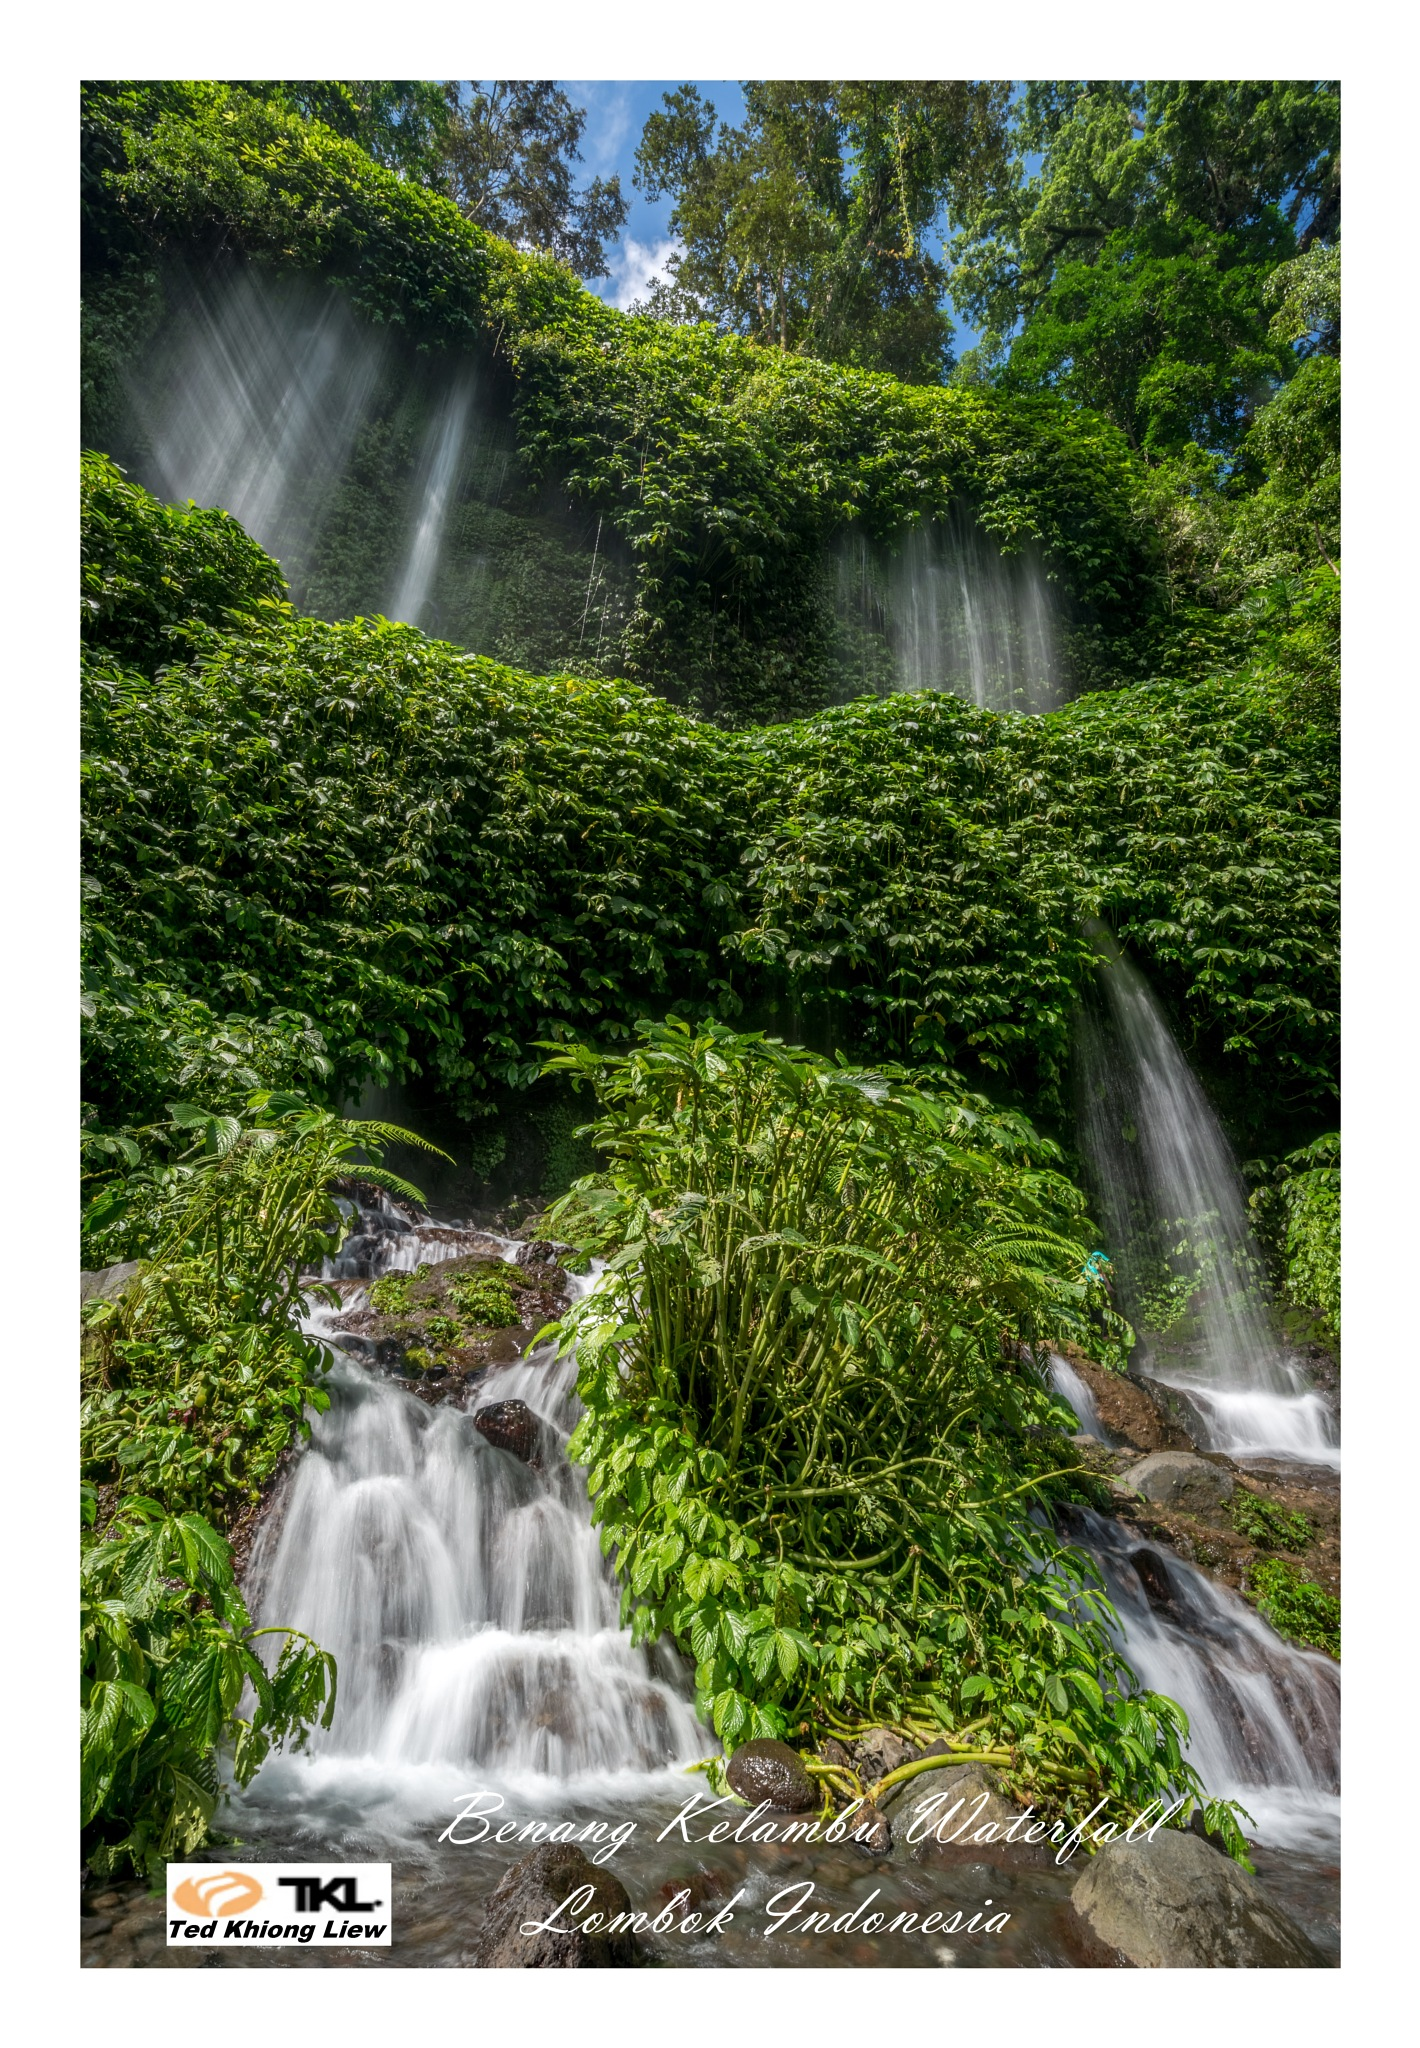 Bengang Kelambu Waterfall by Jeffry Liew Ted Khiong